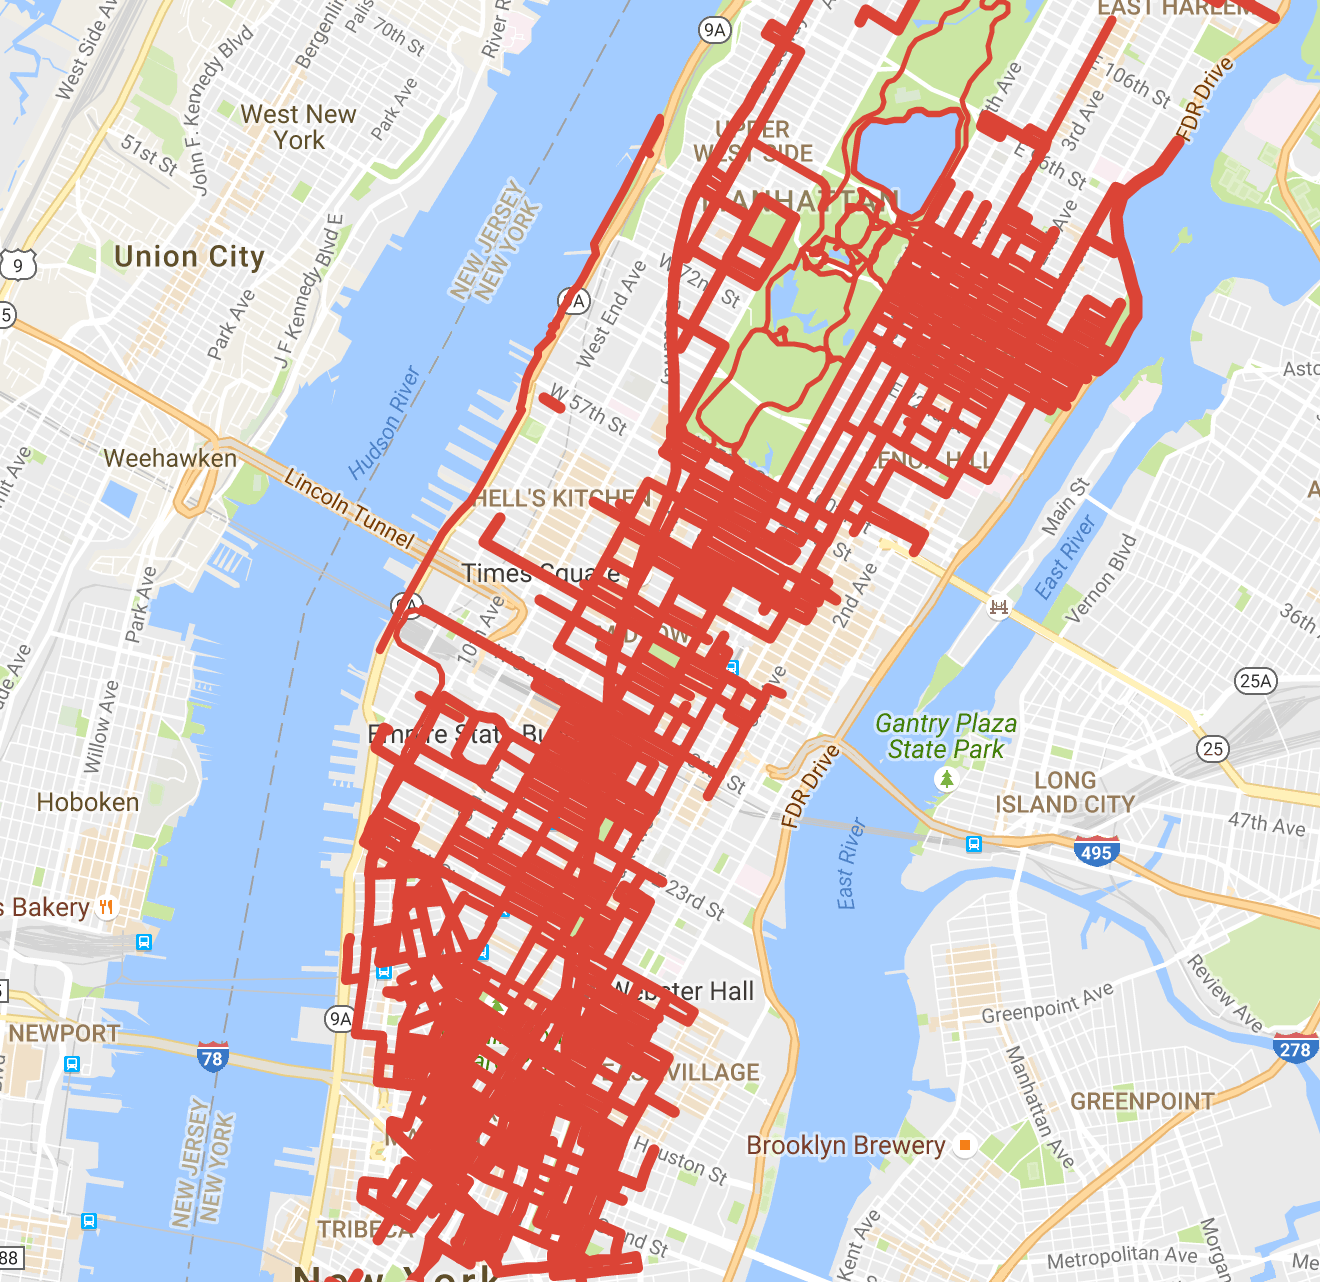 This map displays all the routes and places I walked during my two years of living in Manhattan. Click the map to interact